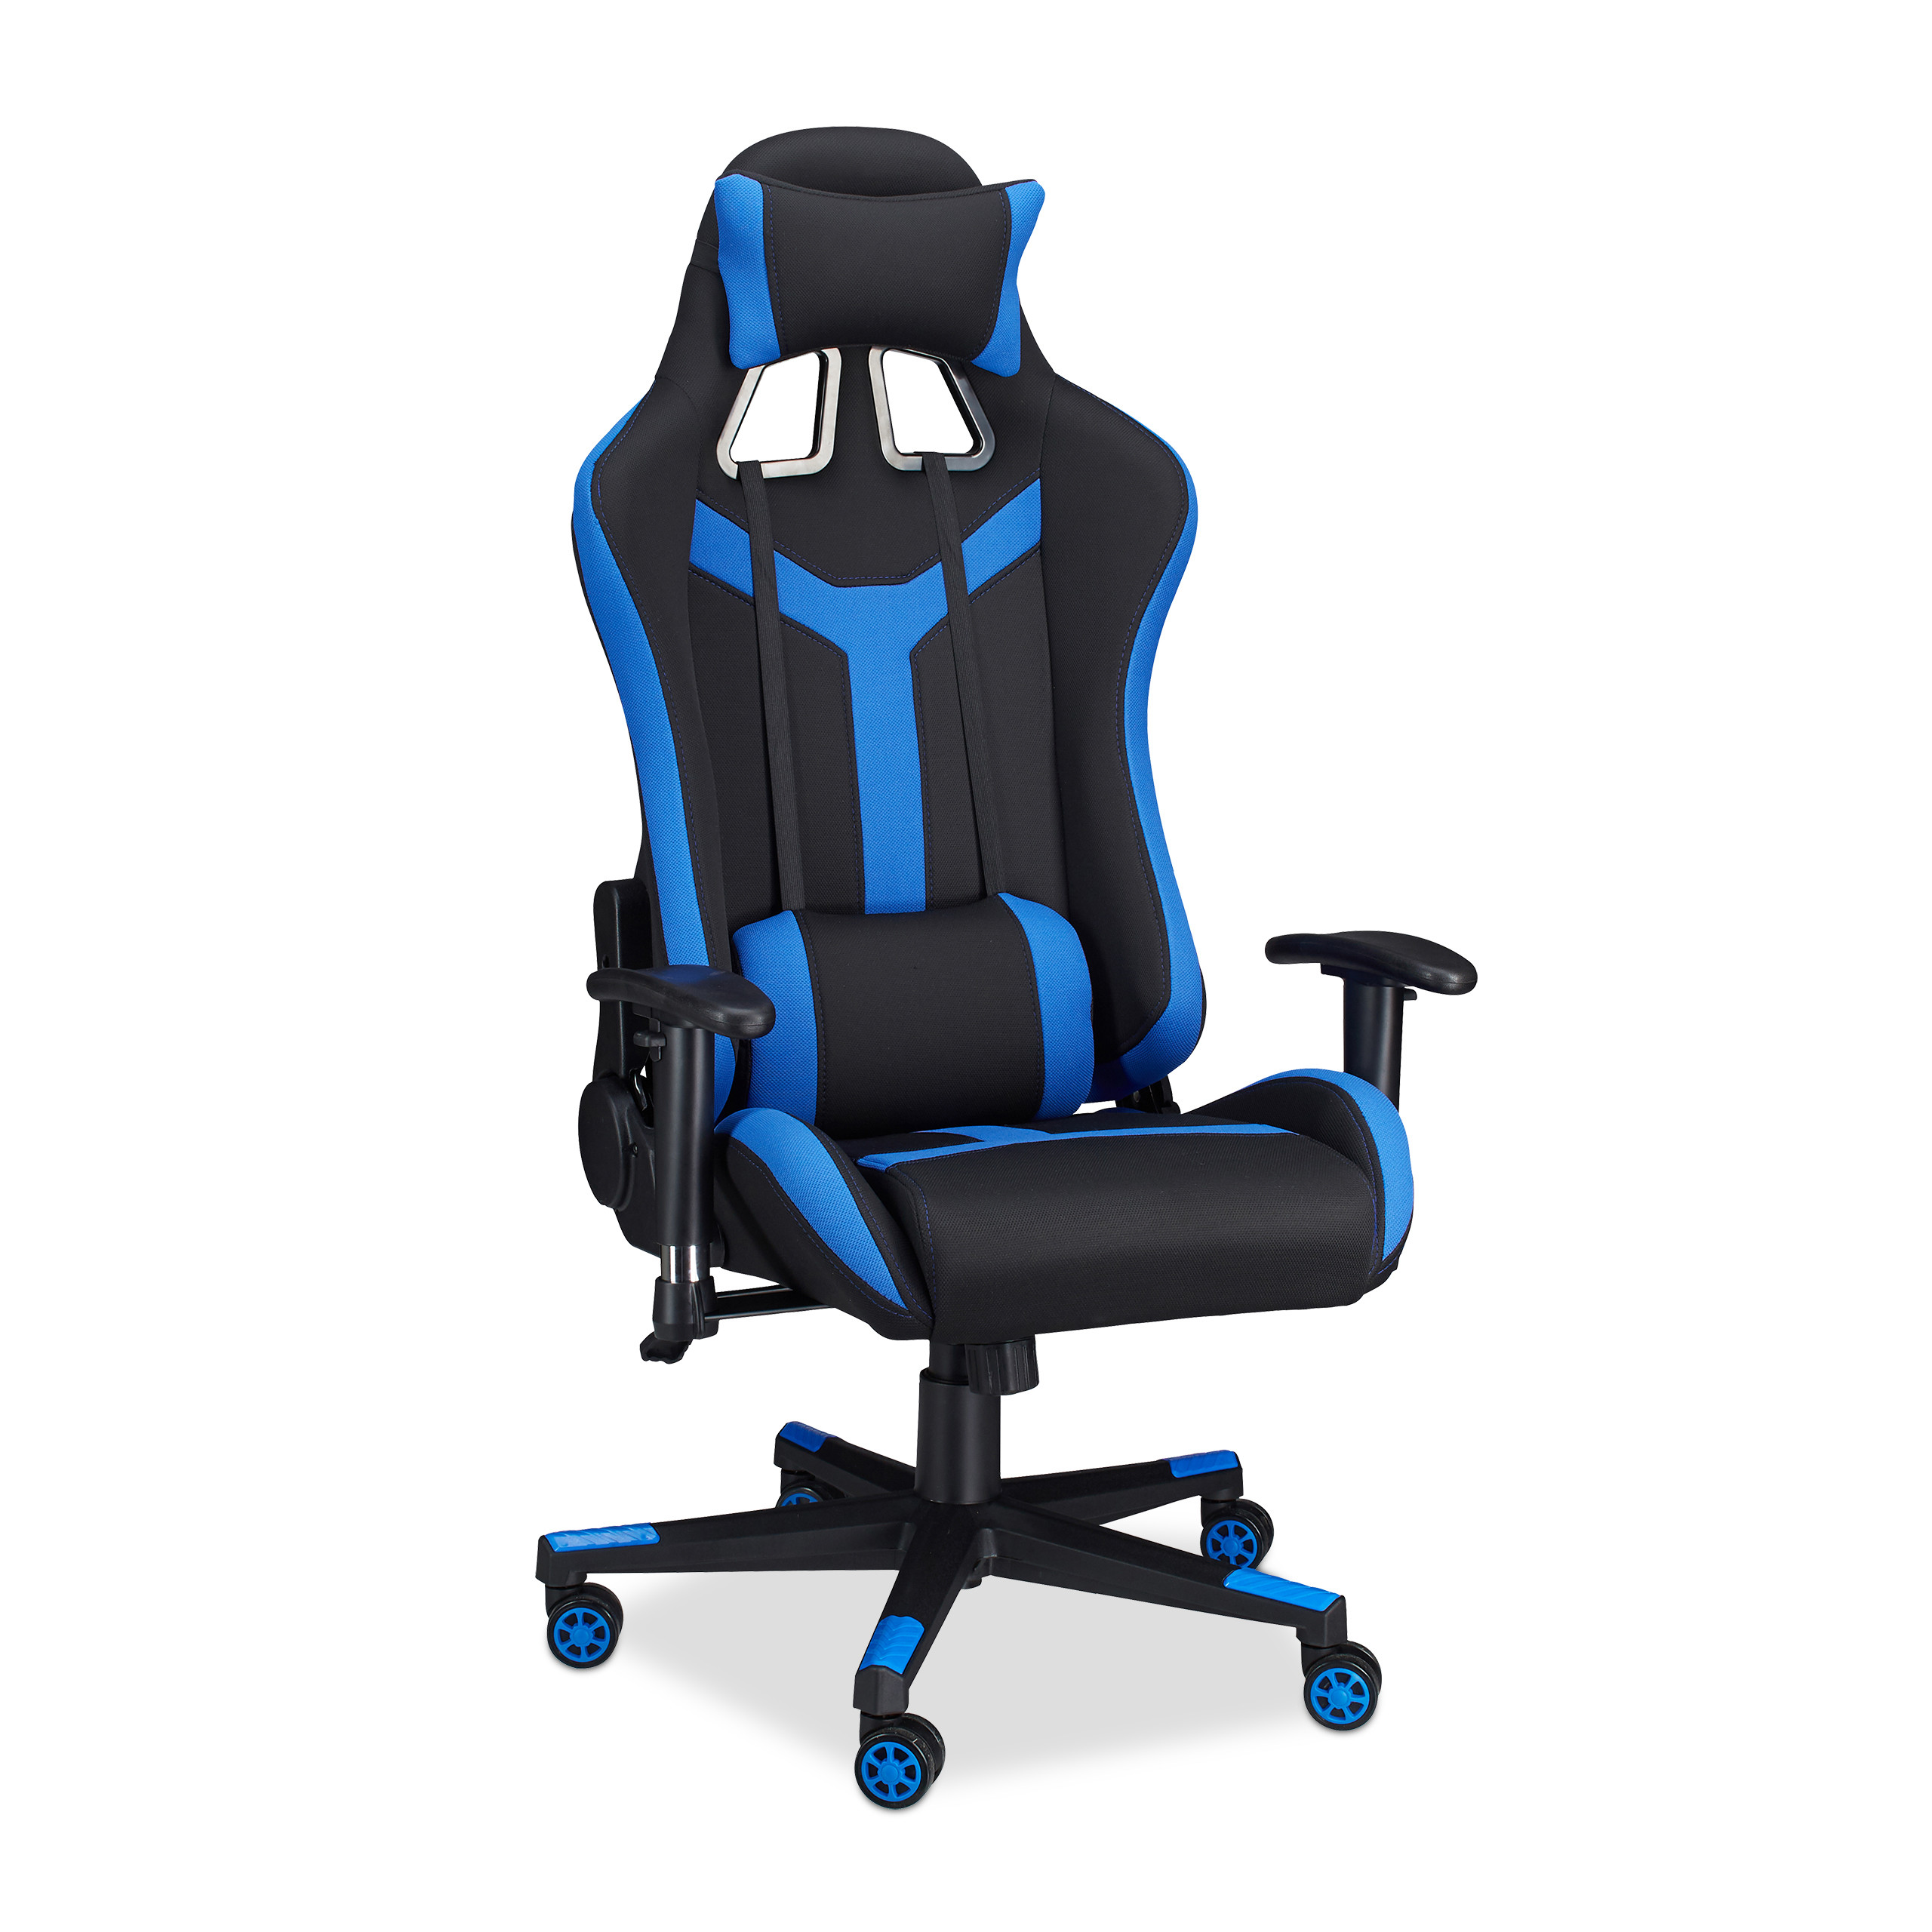 Gaming Sessel Zocker Details Zu Gaming Stuhl Xr10 Bürostuhl Bis 120kg Gamer Chair Verstellbar Computerstuhl